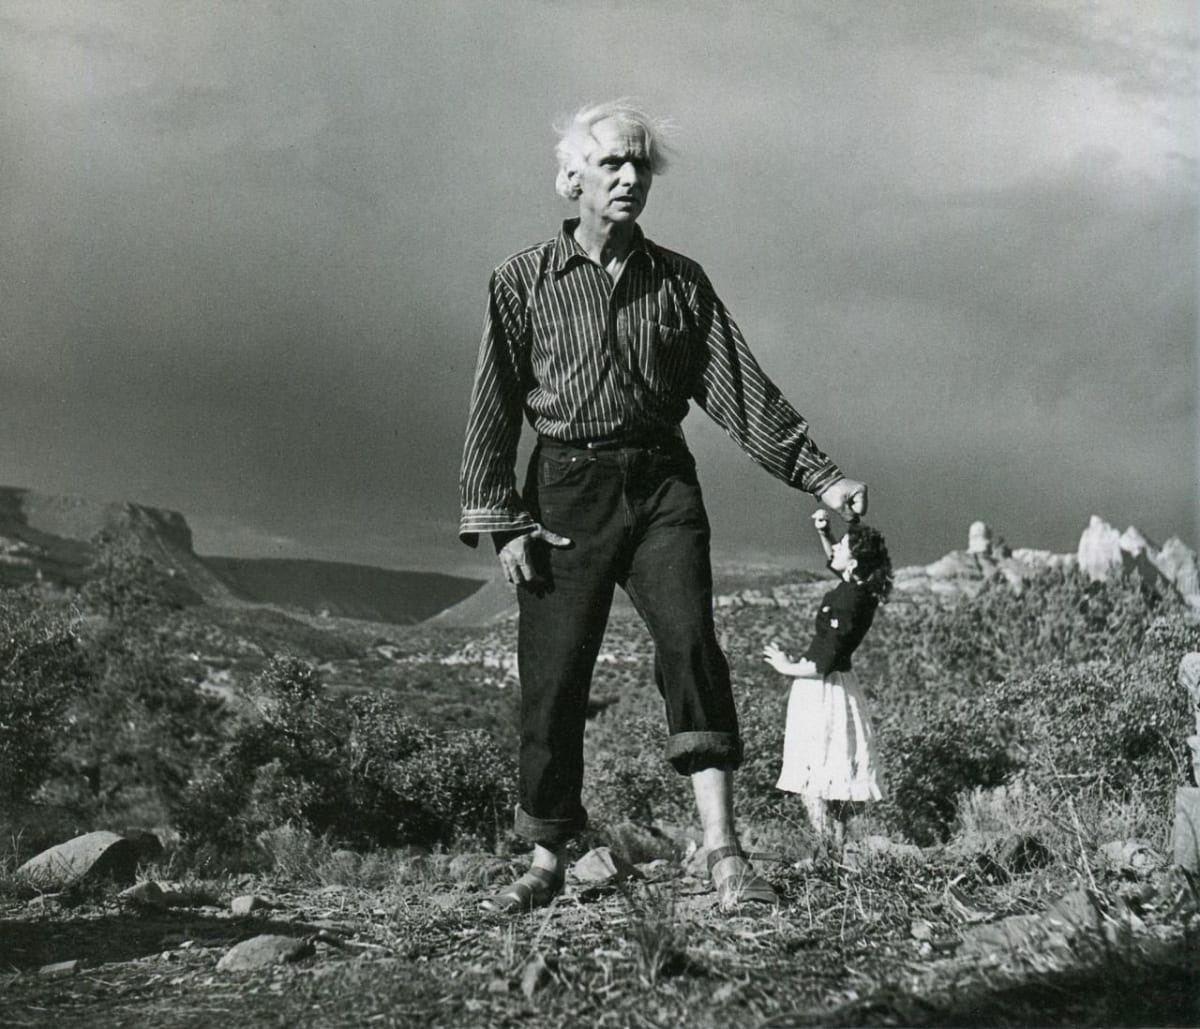 Lee Miller, Max Ernst and Dorothea Tanning in background, Arizona, USA, 1946